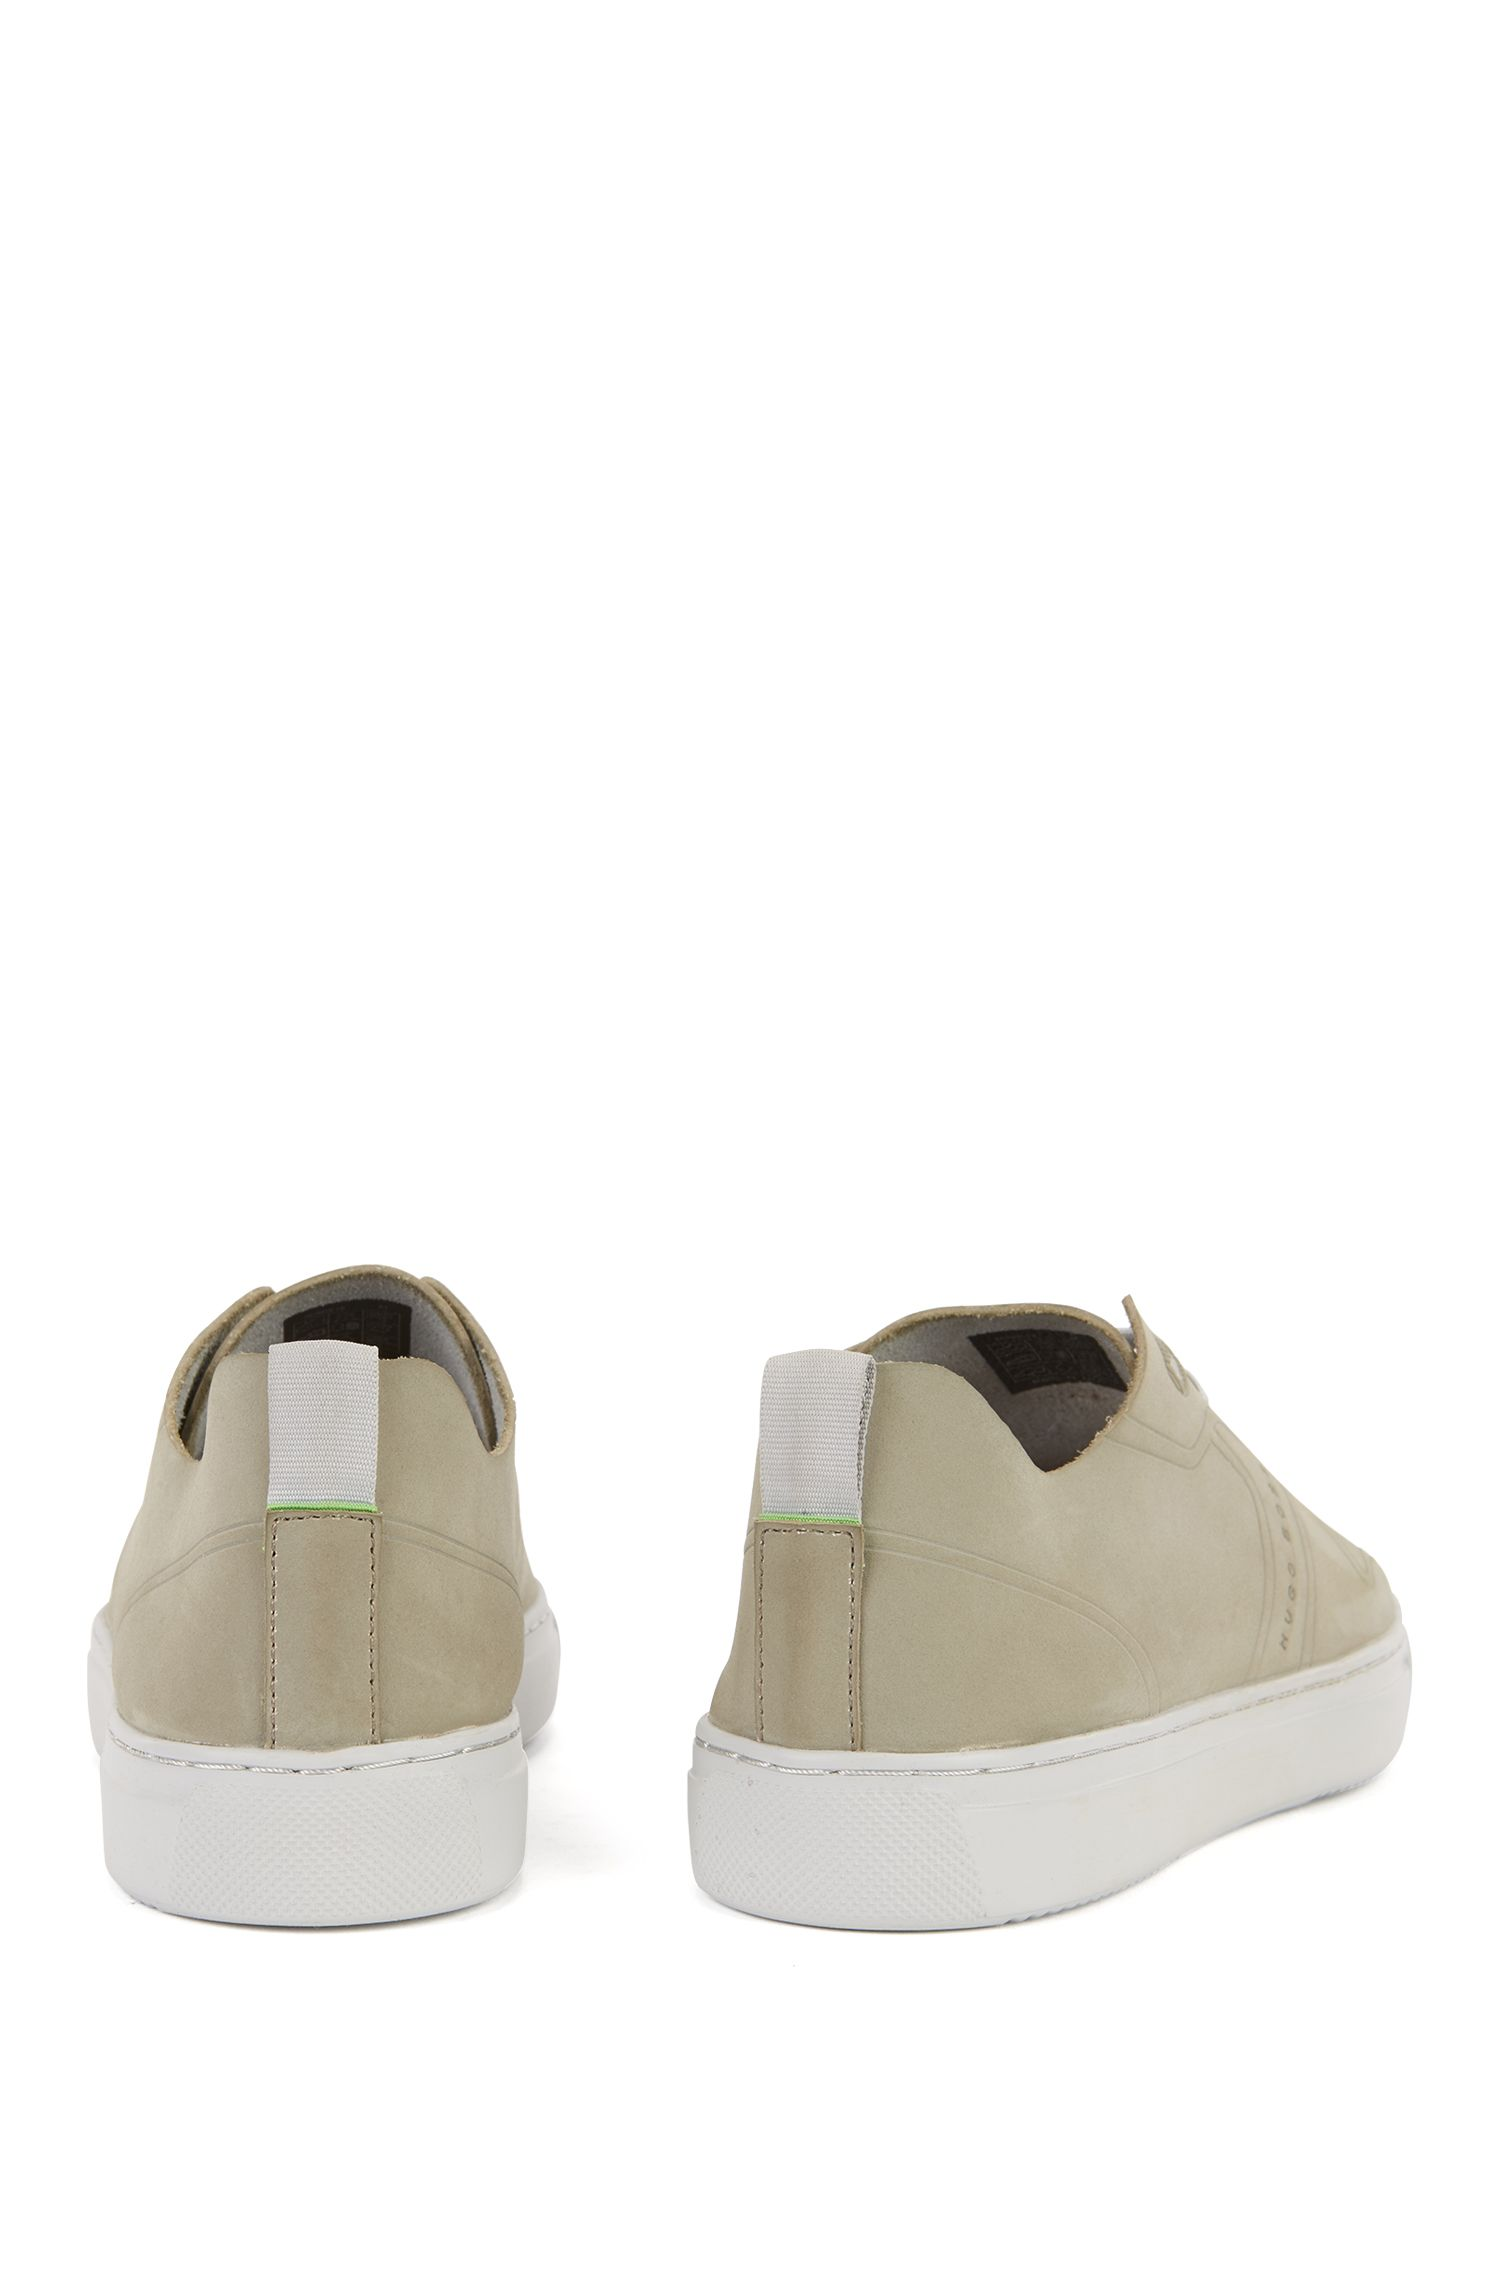 Tennis-style low-top trainers in nubuck